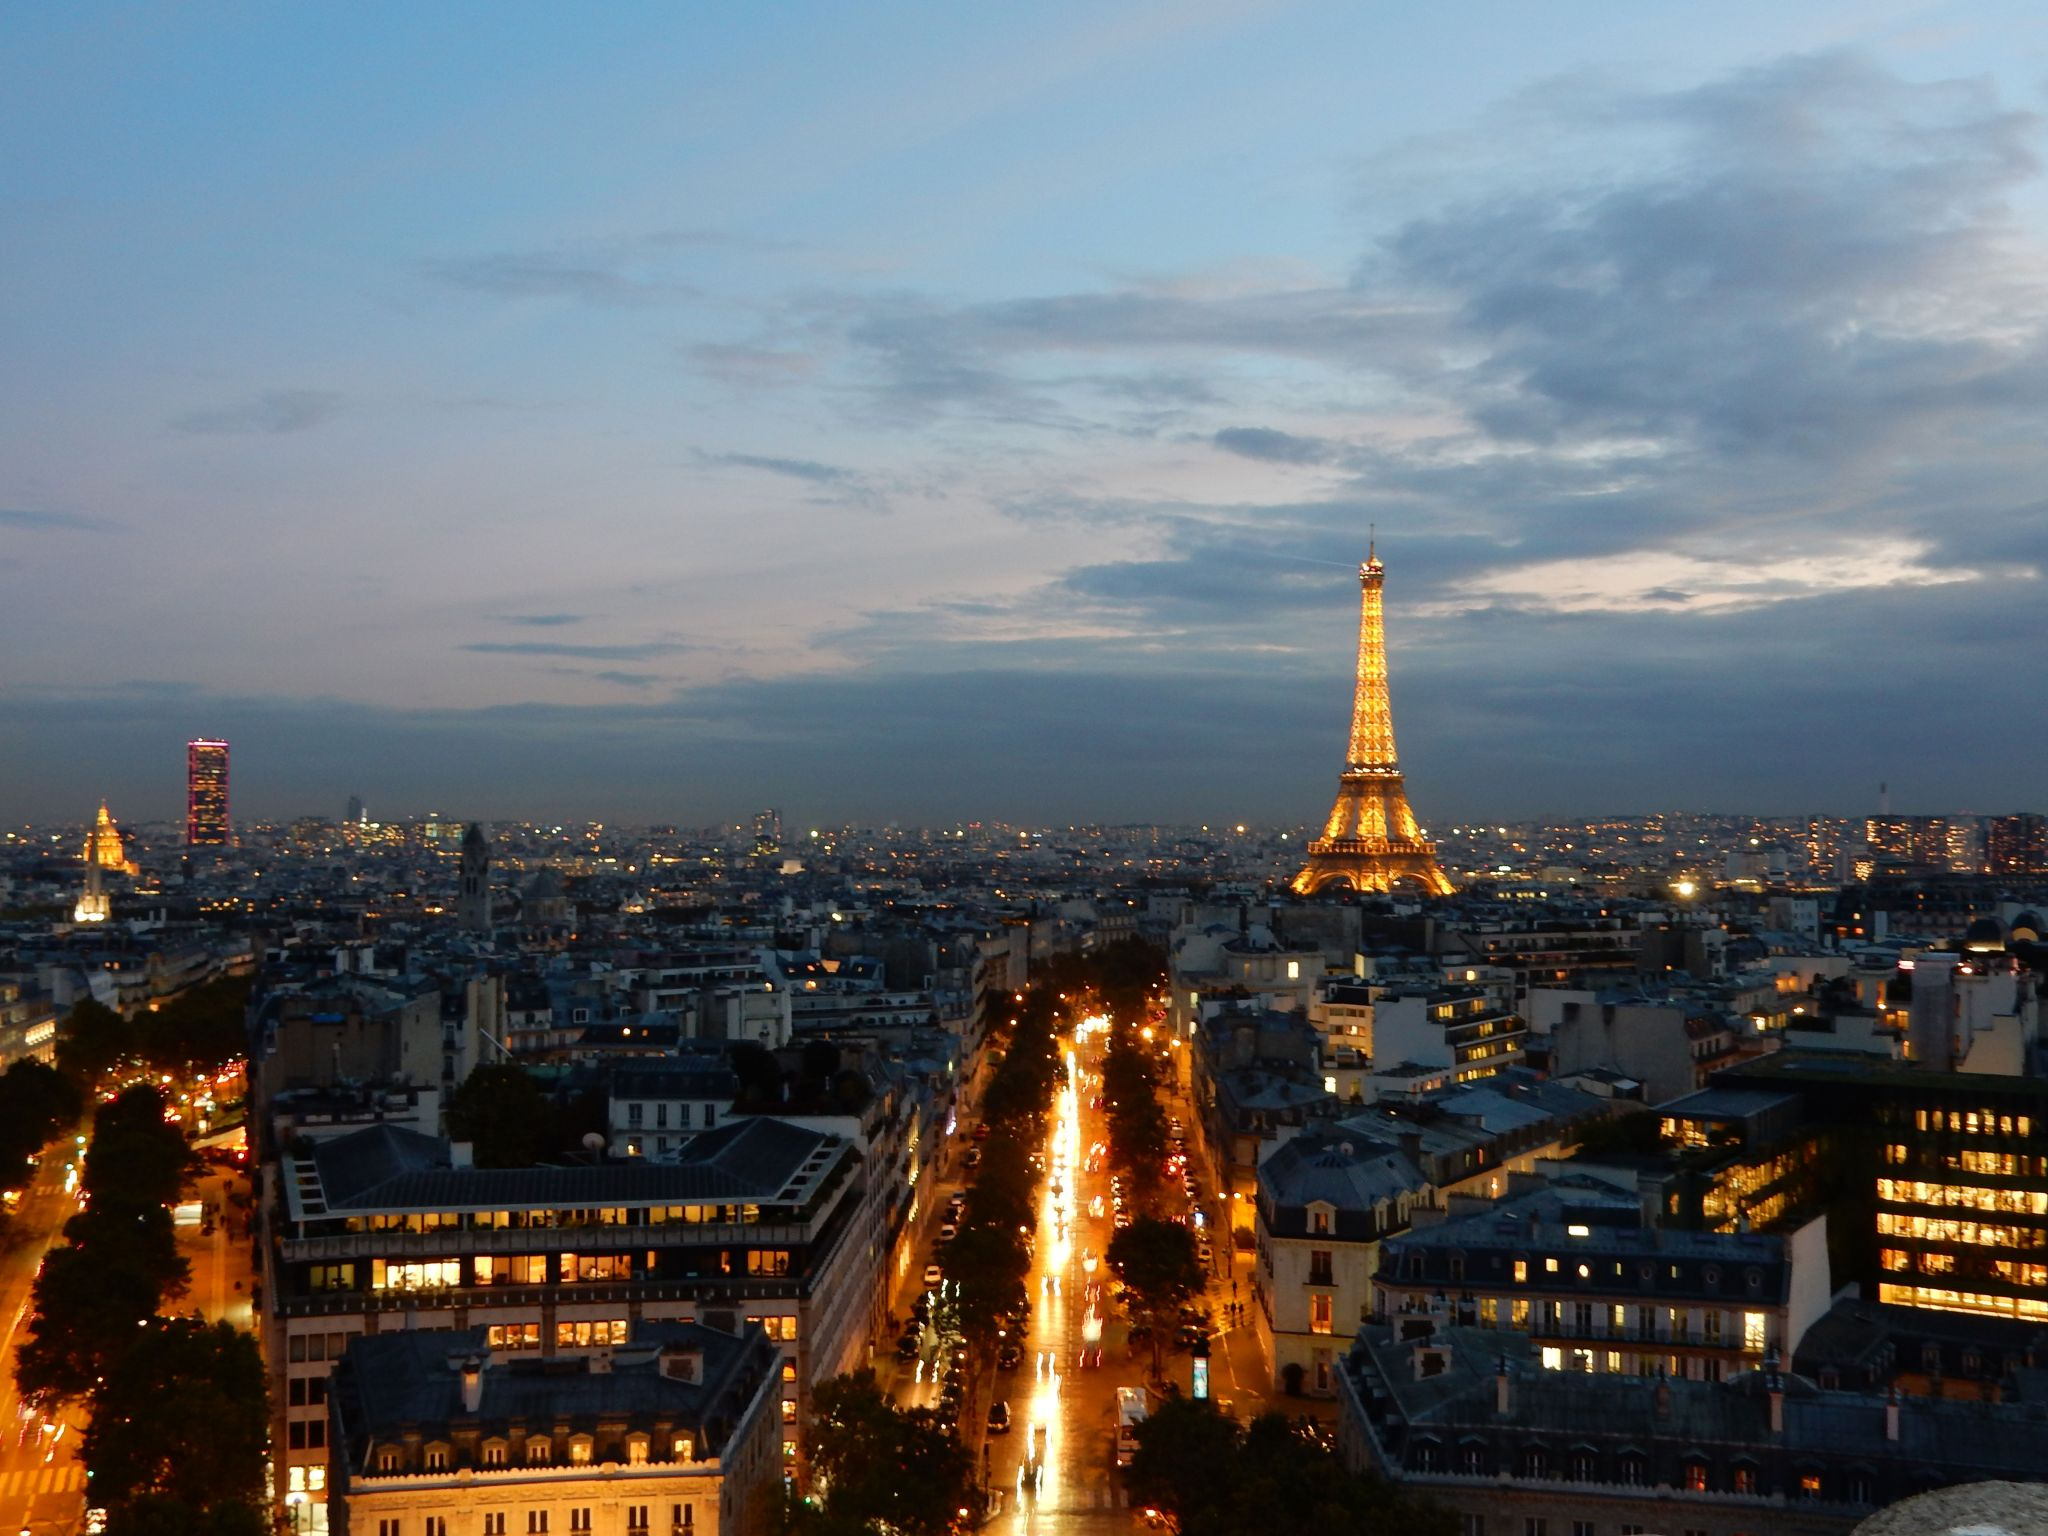 On Top of Arc de Triomphe, France